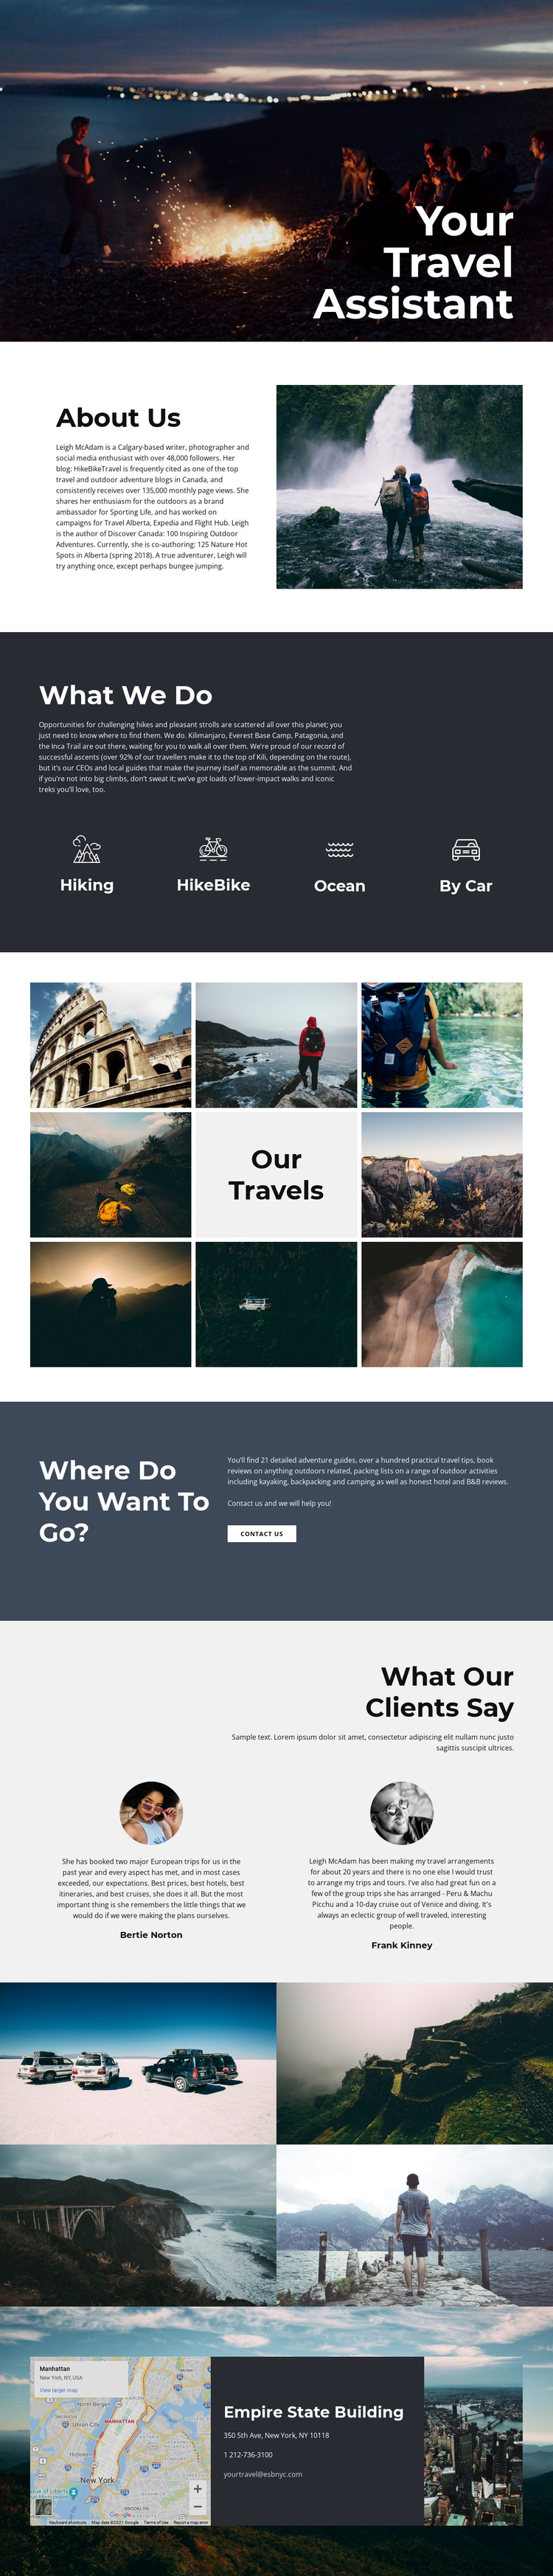 Travel Assistant One Page Template